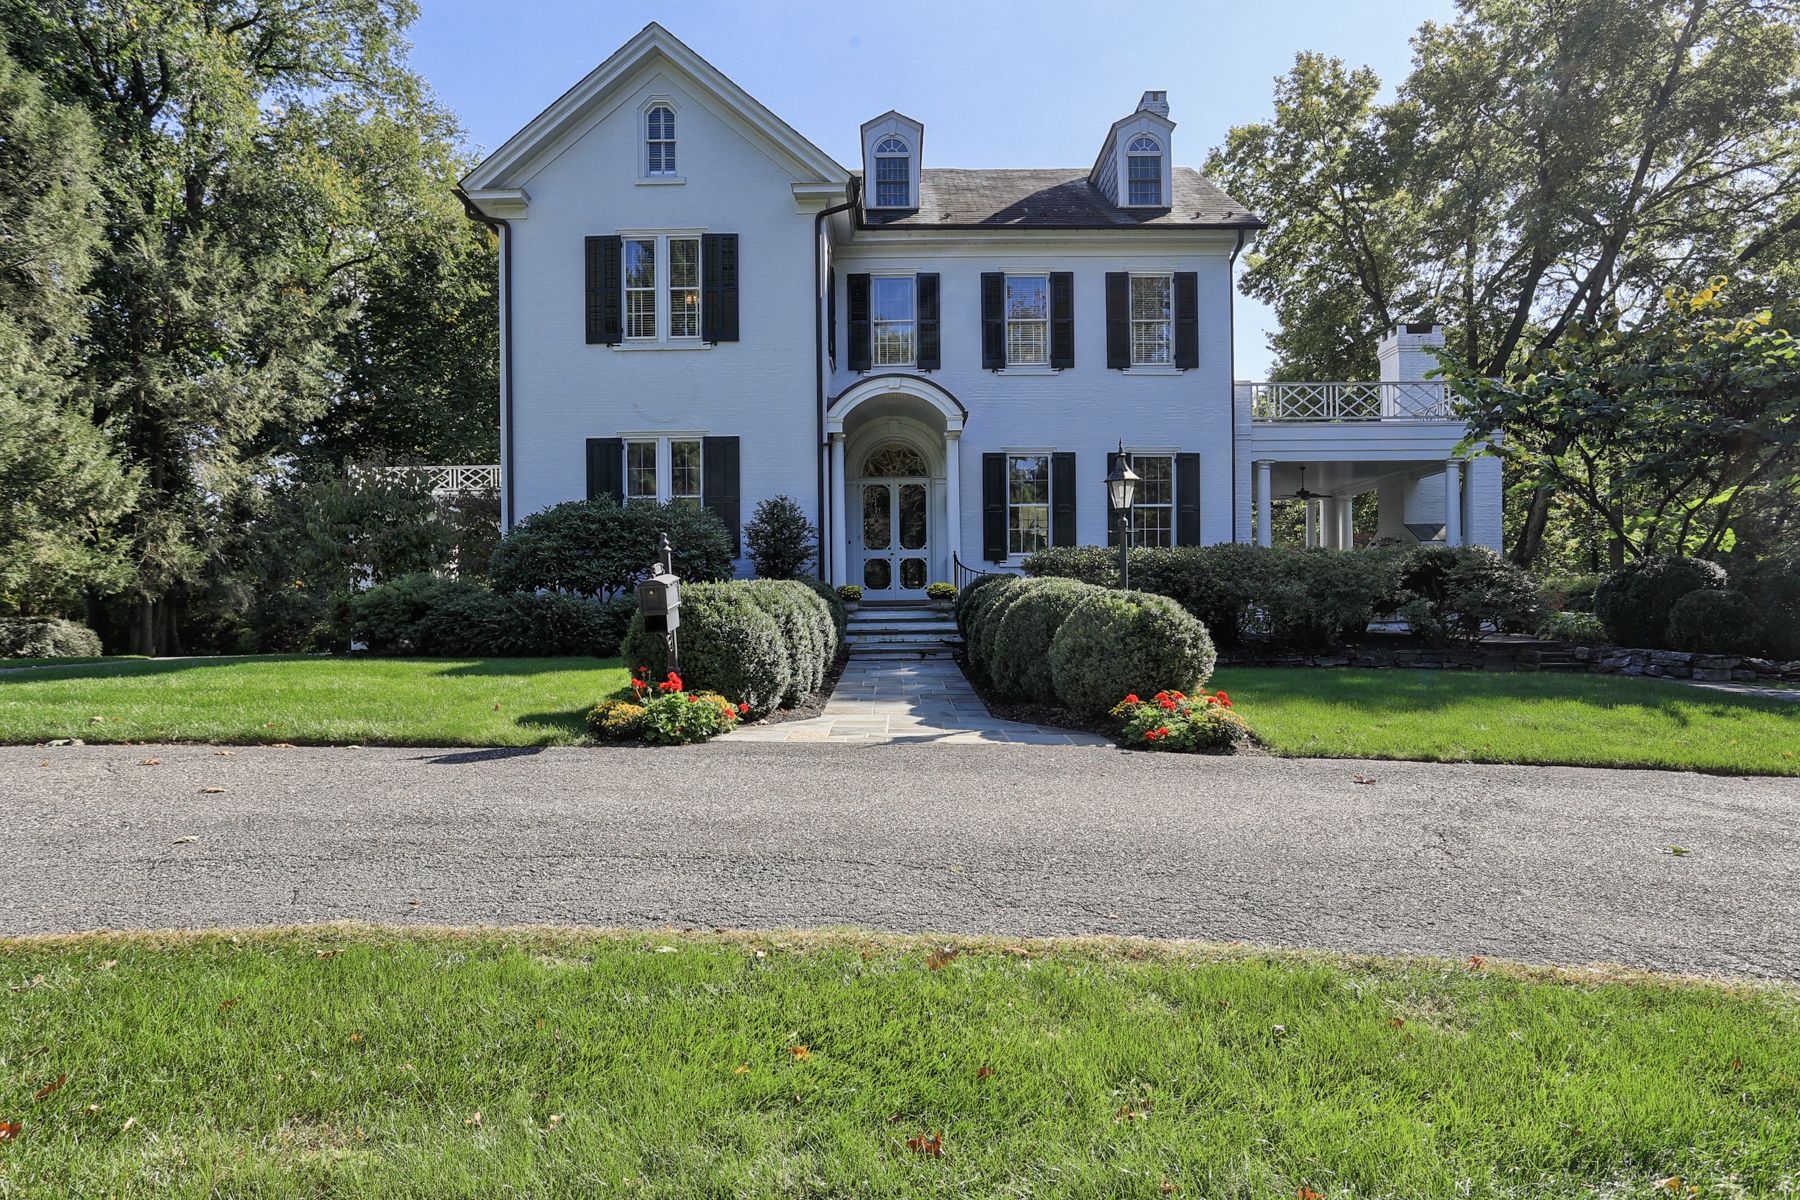 Single Family Home for Sale at 1126 Columbia Avenue Lancaster, Pennsylvania 17603 United States